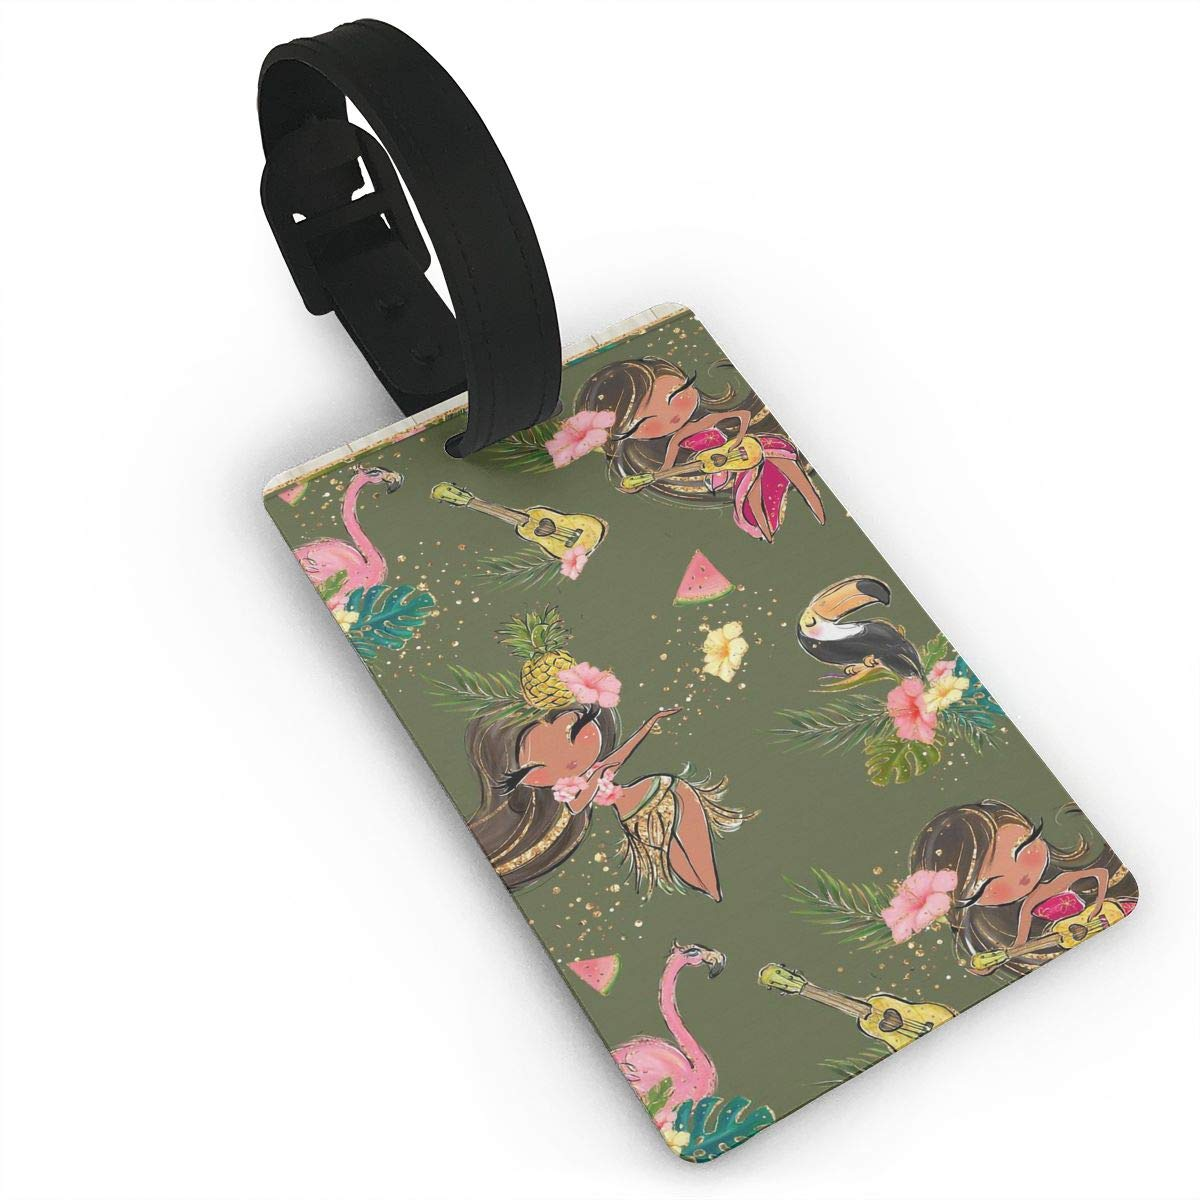 2 Pack Luggage Tags Toucans Handbag Tag For Travel Bag Suitcase Accessories